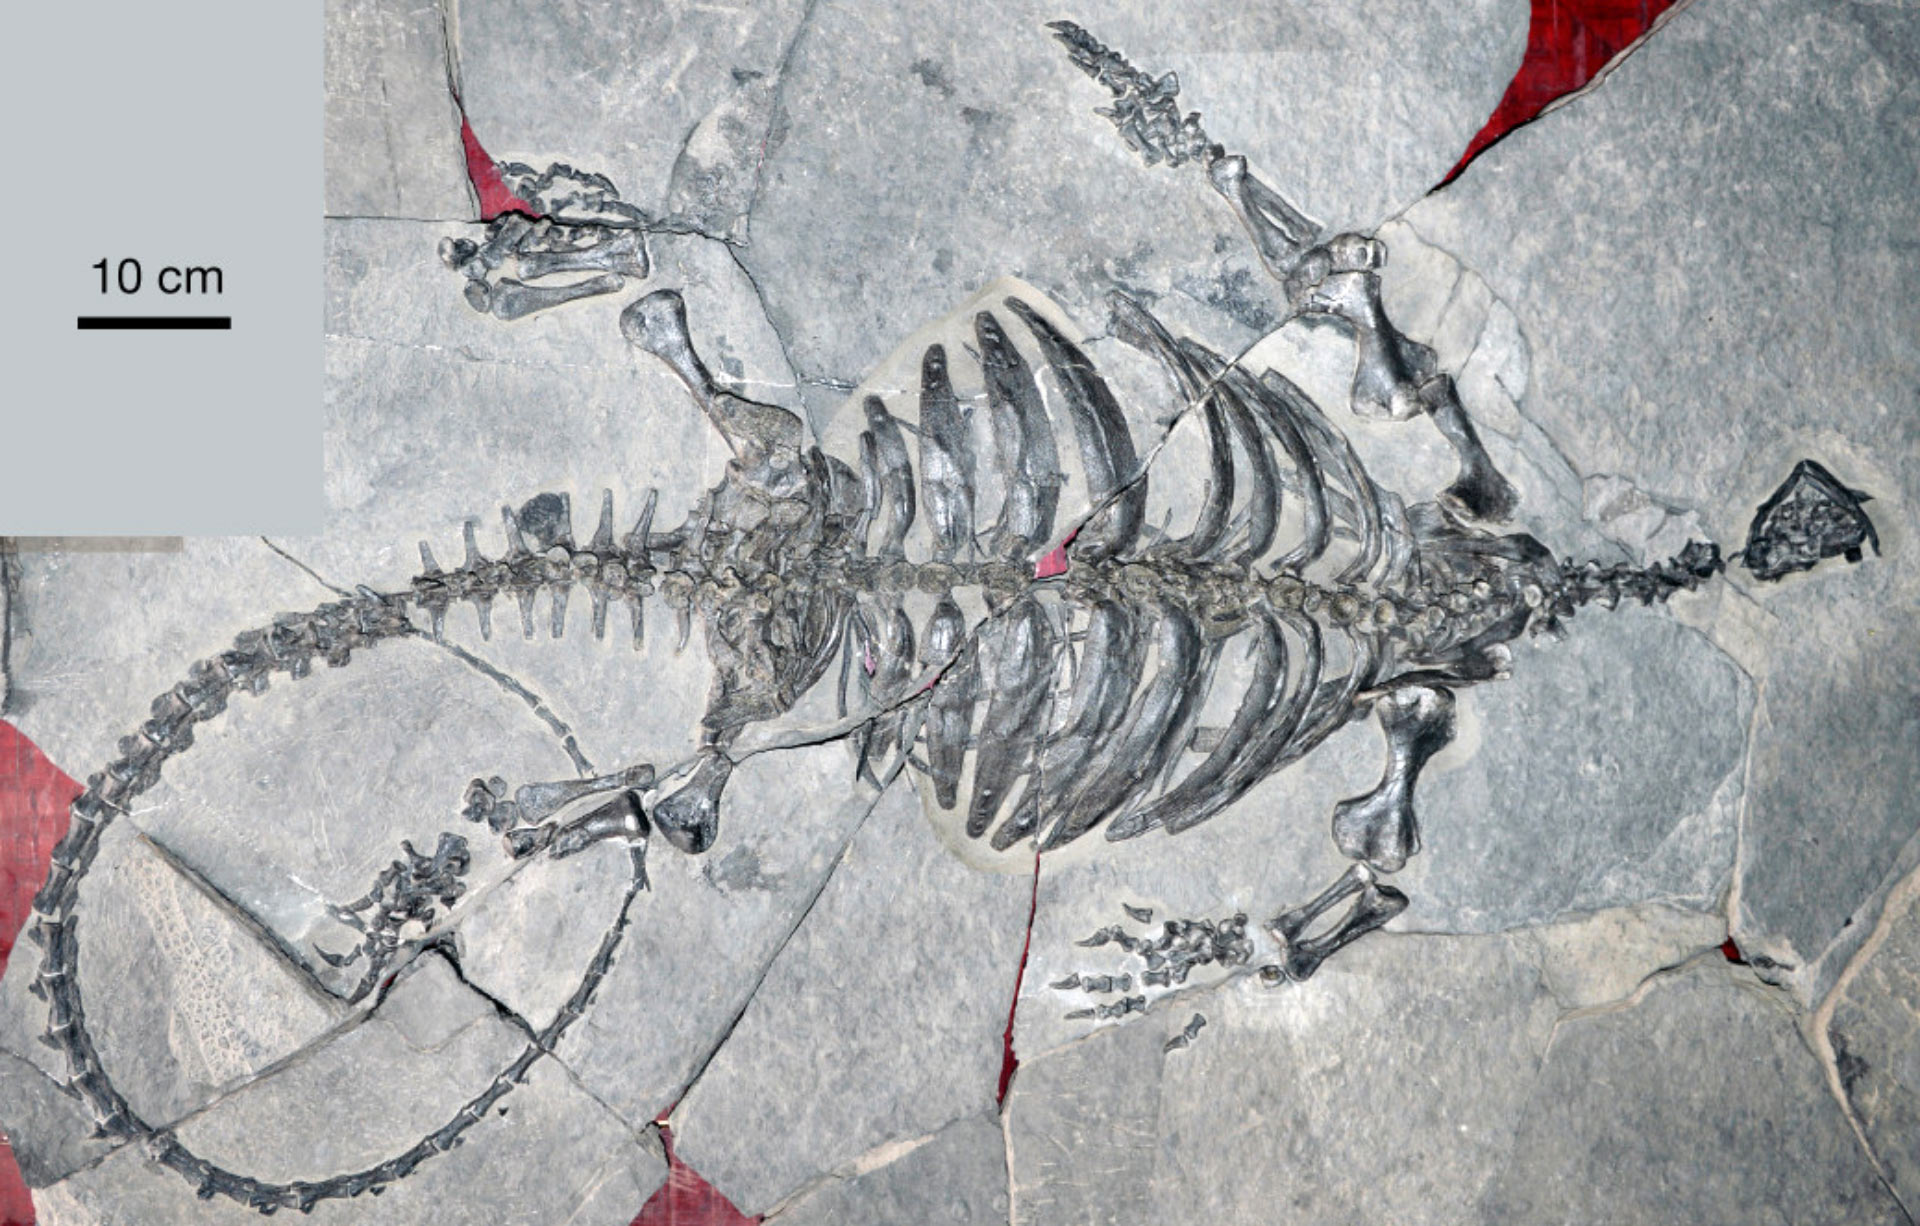 Early Turtles Had Beaks, but Not Shells